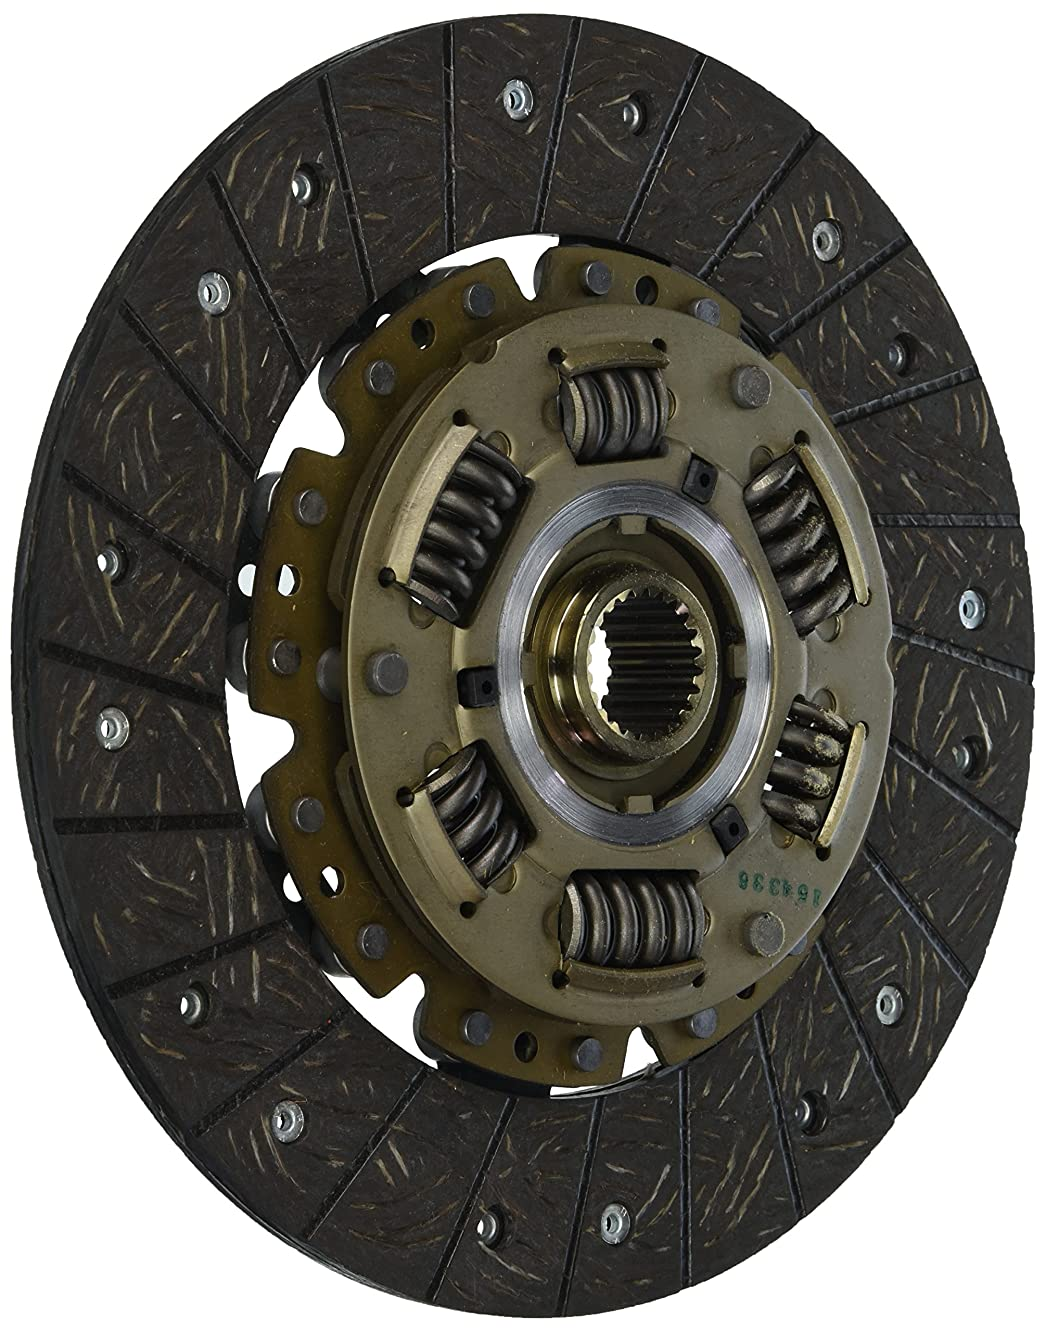 Centerforce 380944 II, Clutch Friction Disc-380944